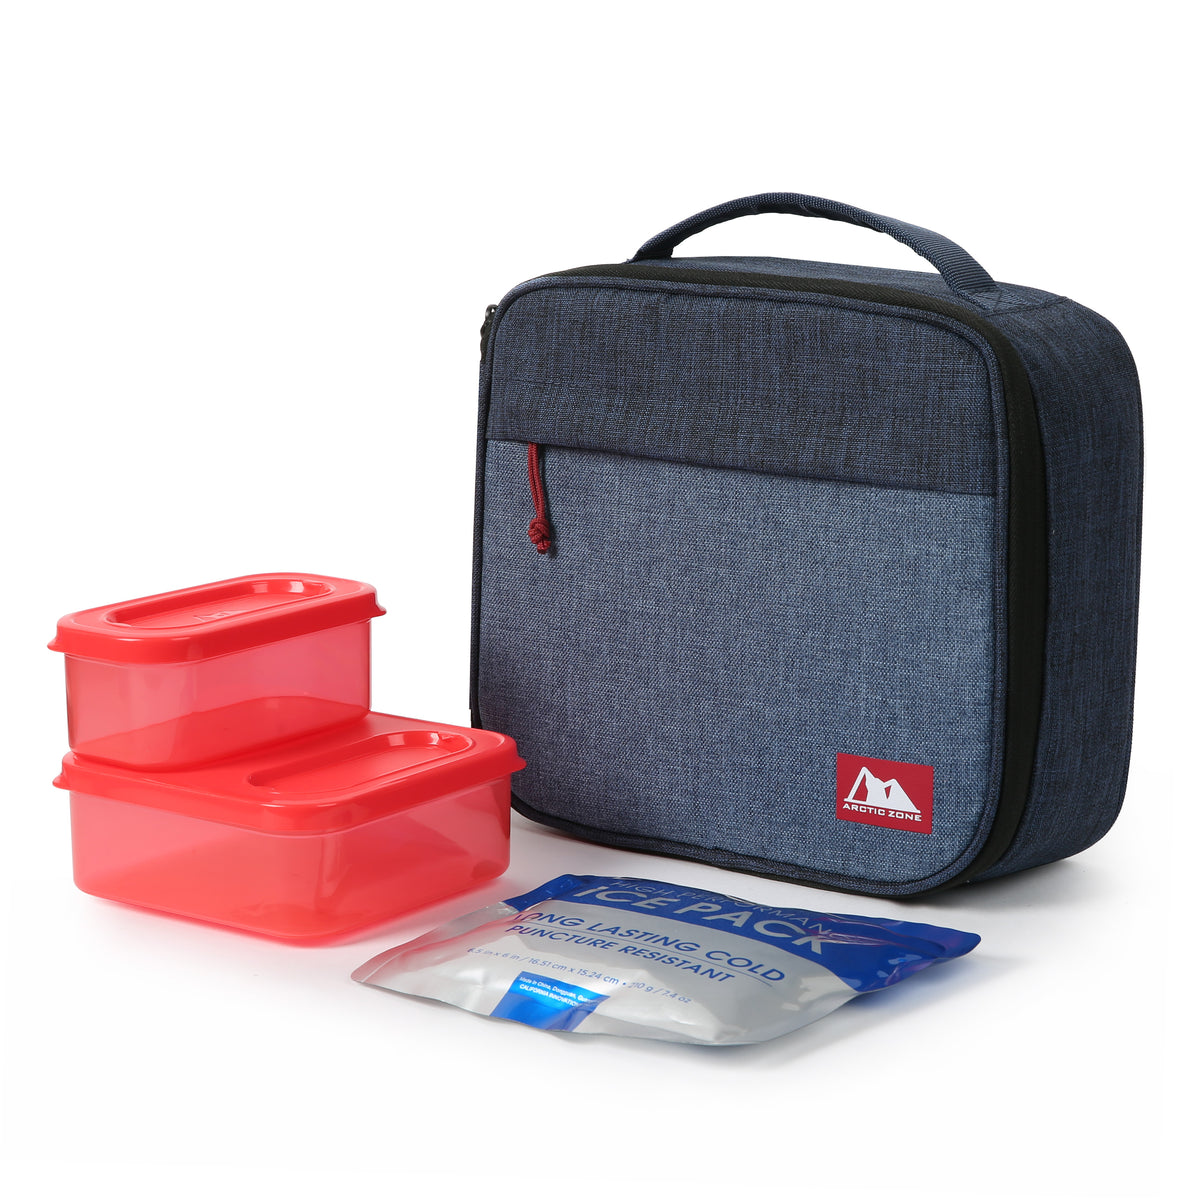 Arctic Zone® Classics Lunch Box with 210gm Ice pack & 4 Piece Container Set - Blue